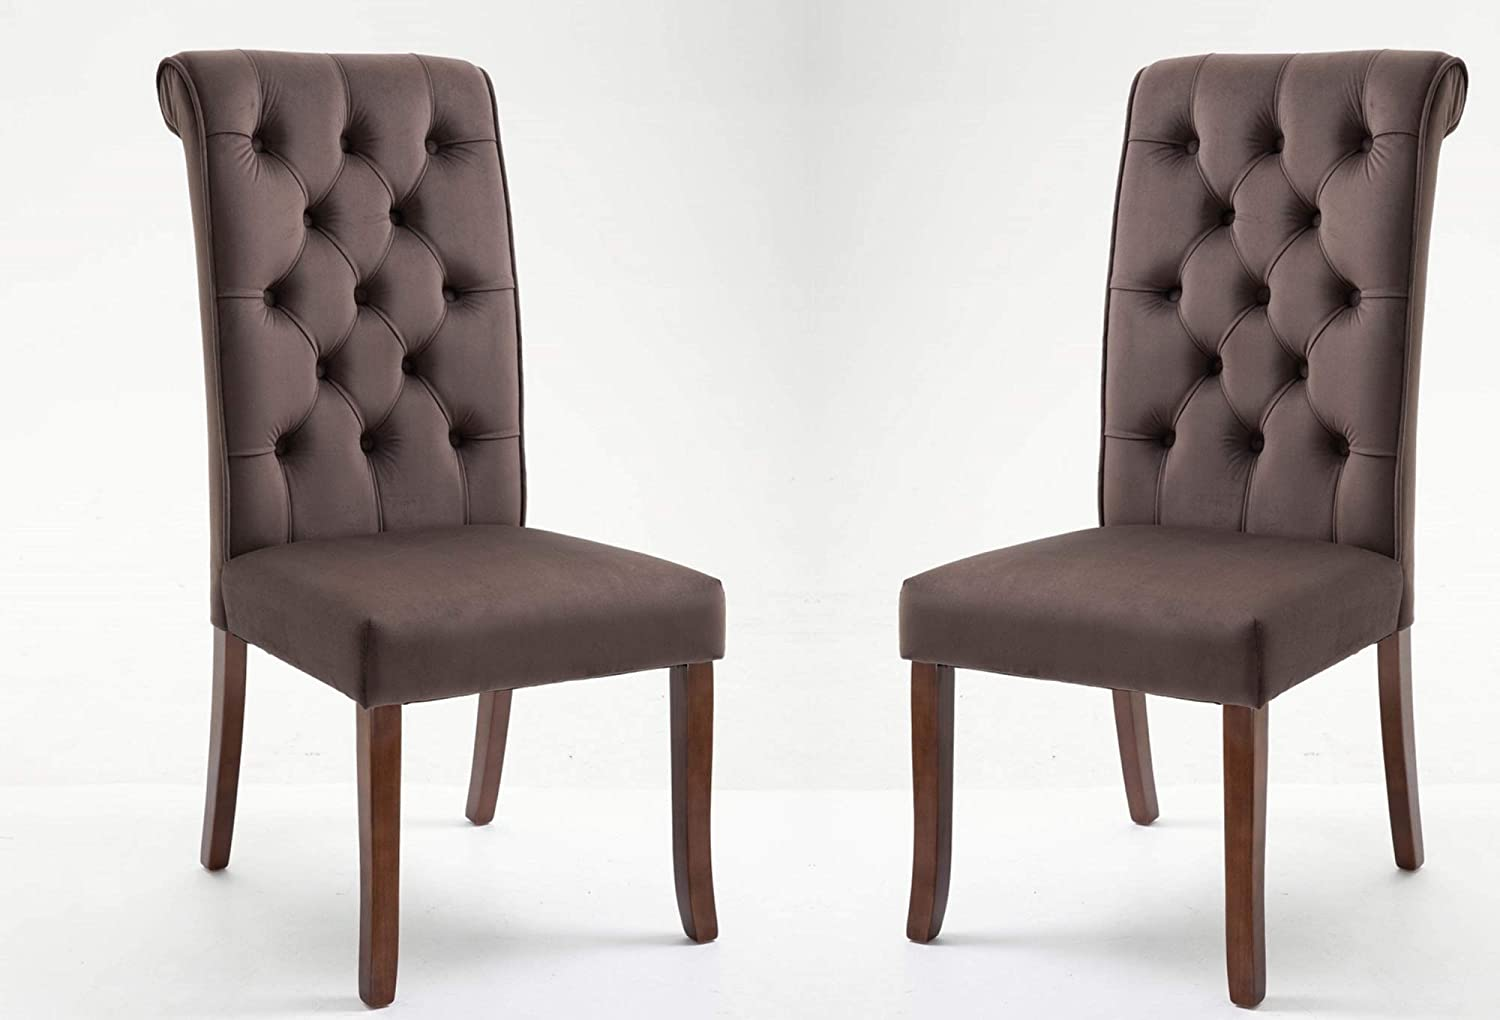 Danxee Dining Chair Tufted Upholstered Velvet Armless Accent Chair Padded Side Chairs with Solid Wood Legs Tall Back Set of 2 Brown